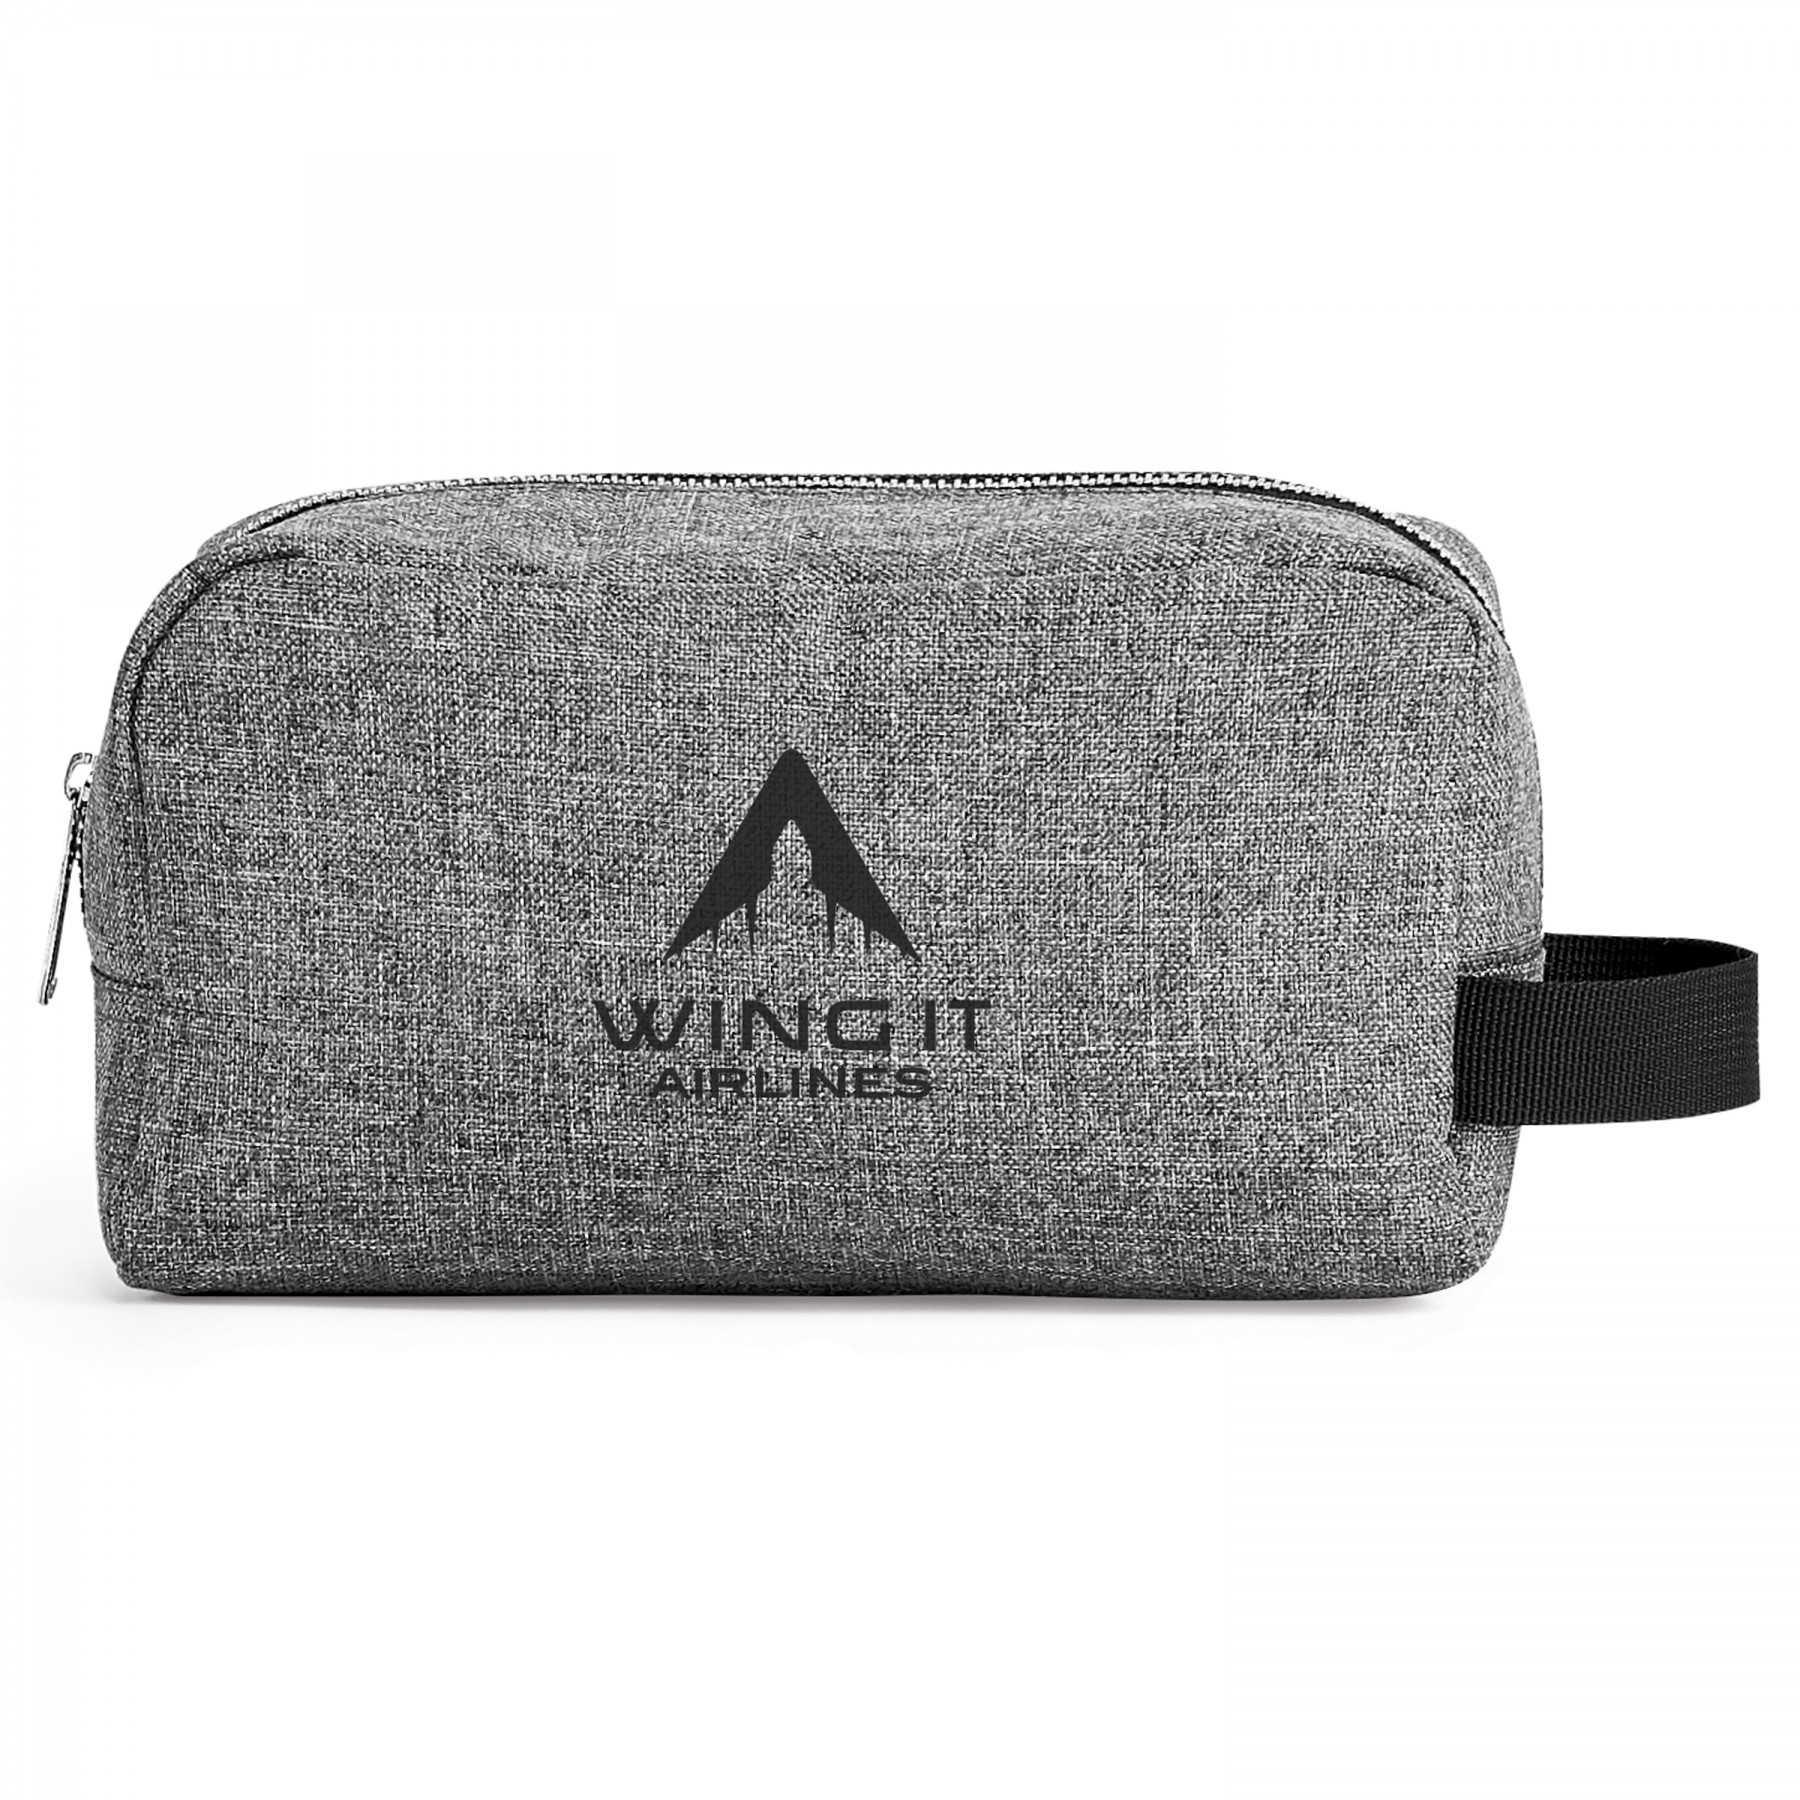 Nomad Must Haves Accessory Case, BG700, One Colour Imprint